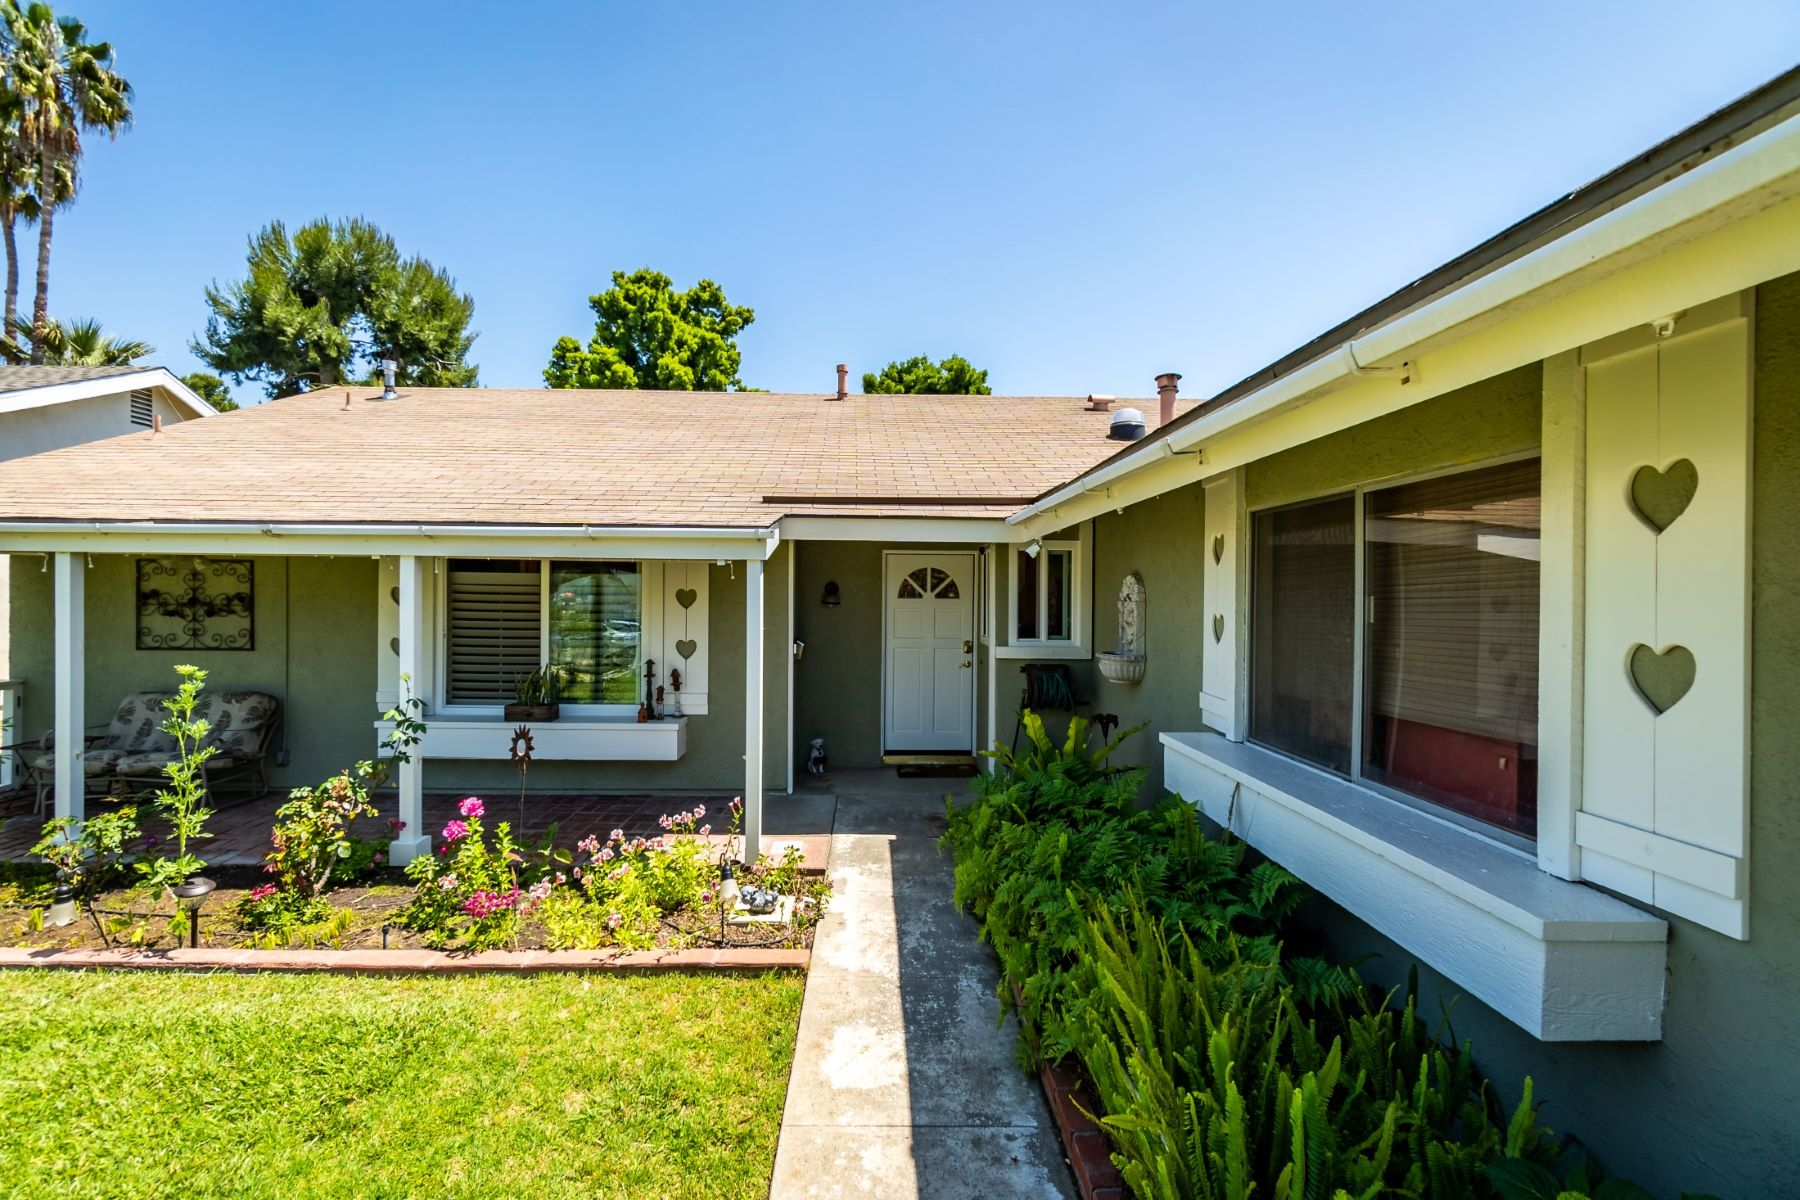 Single Family Homes for Sale at 23332 Cavanaugh Rd, Lake Forest 23332 Cavanaugh Road Lake Forest, California 92630 United States